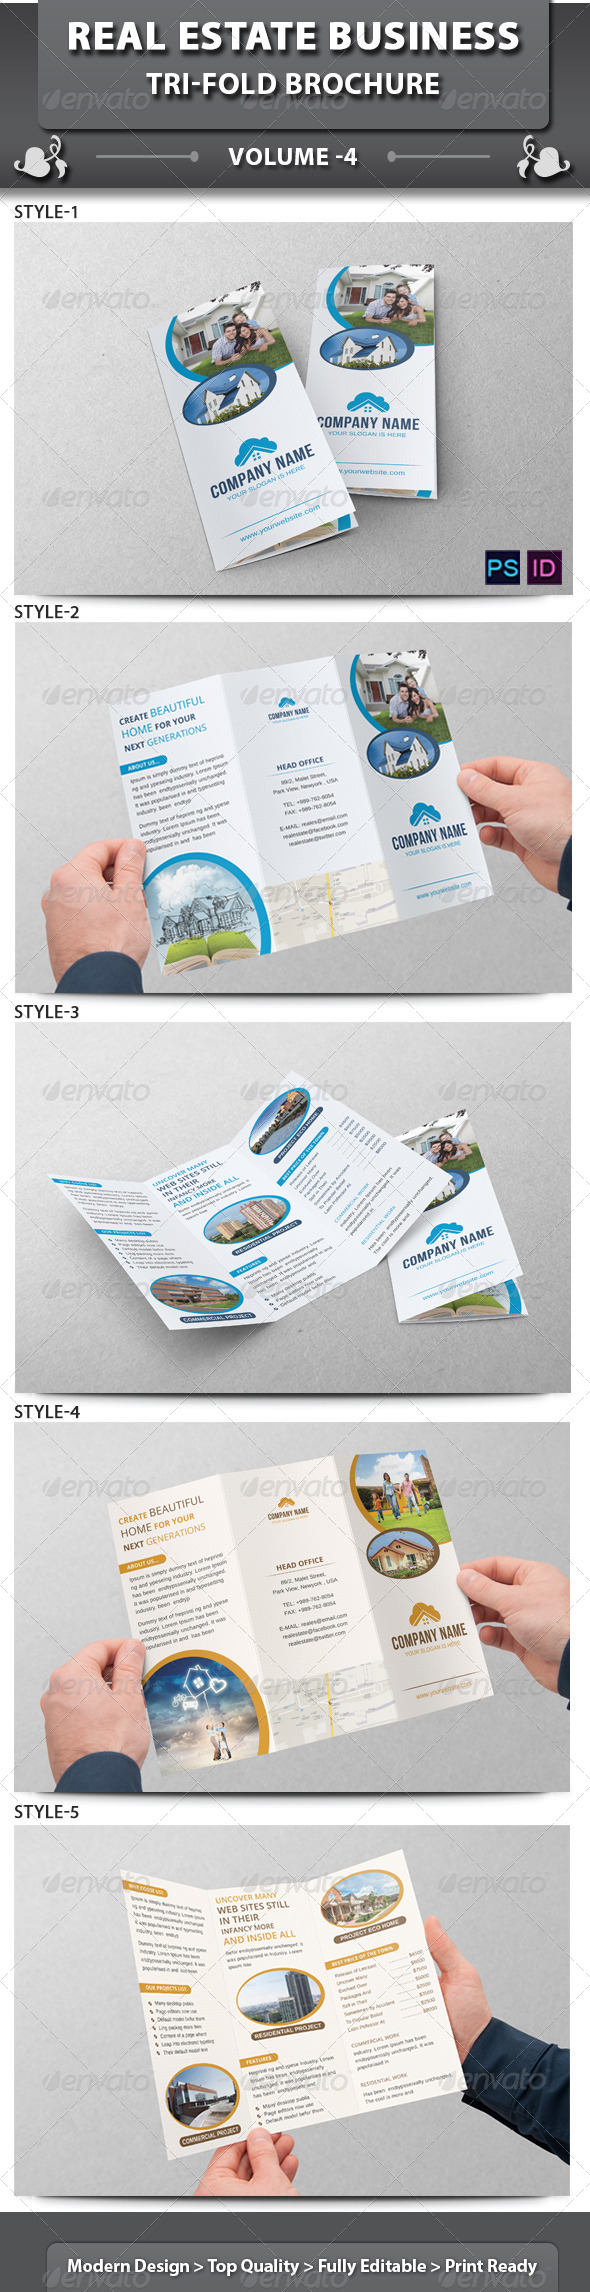 Real Estate Business Tri-fold Brochure | Volume 4 - Corporate Brochures